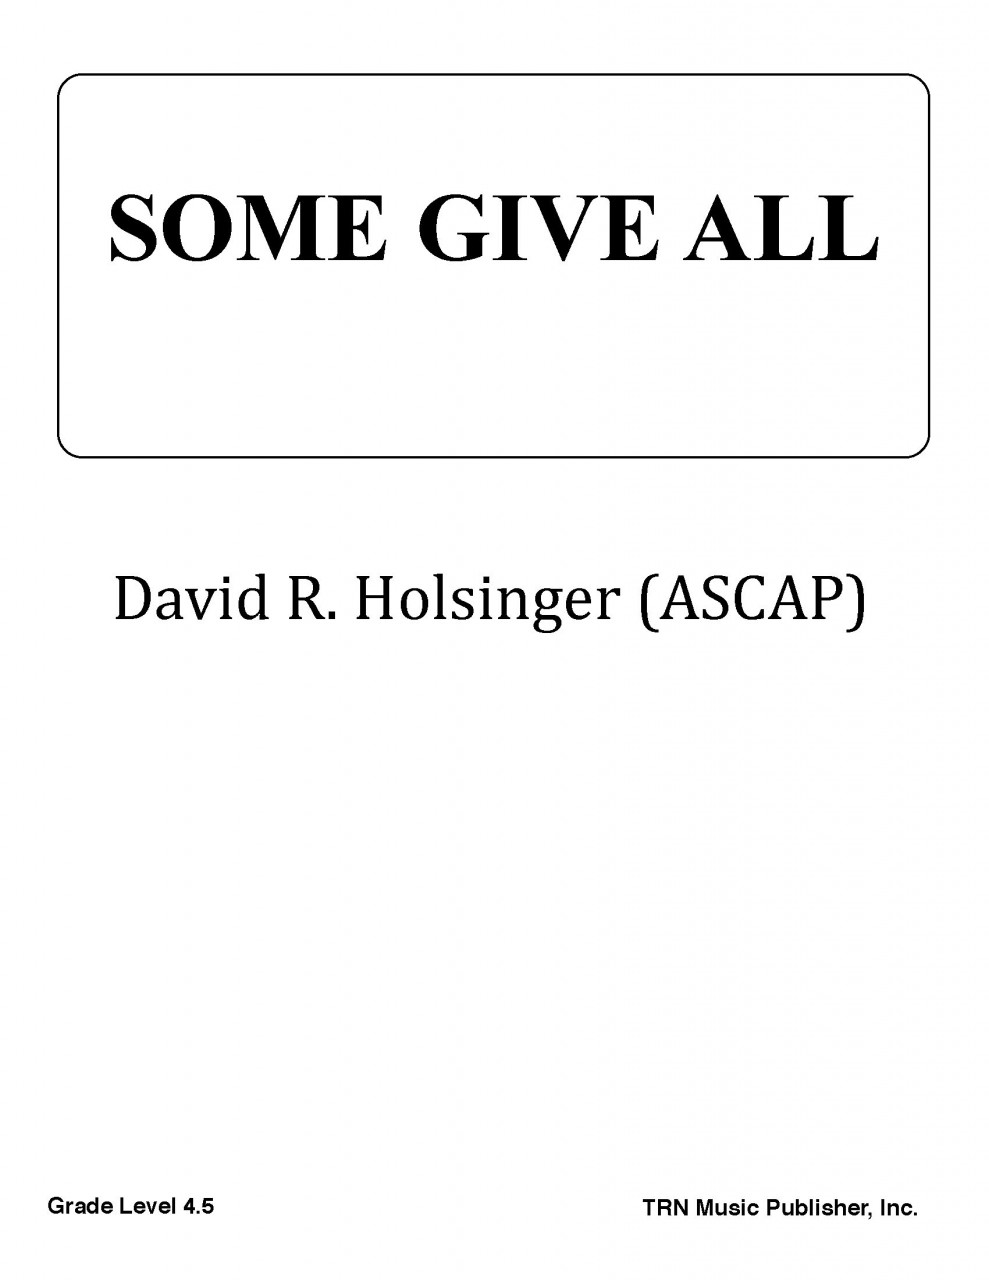 Some Give All